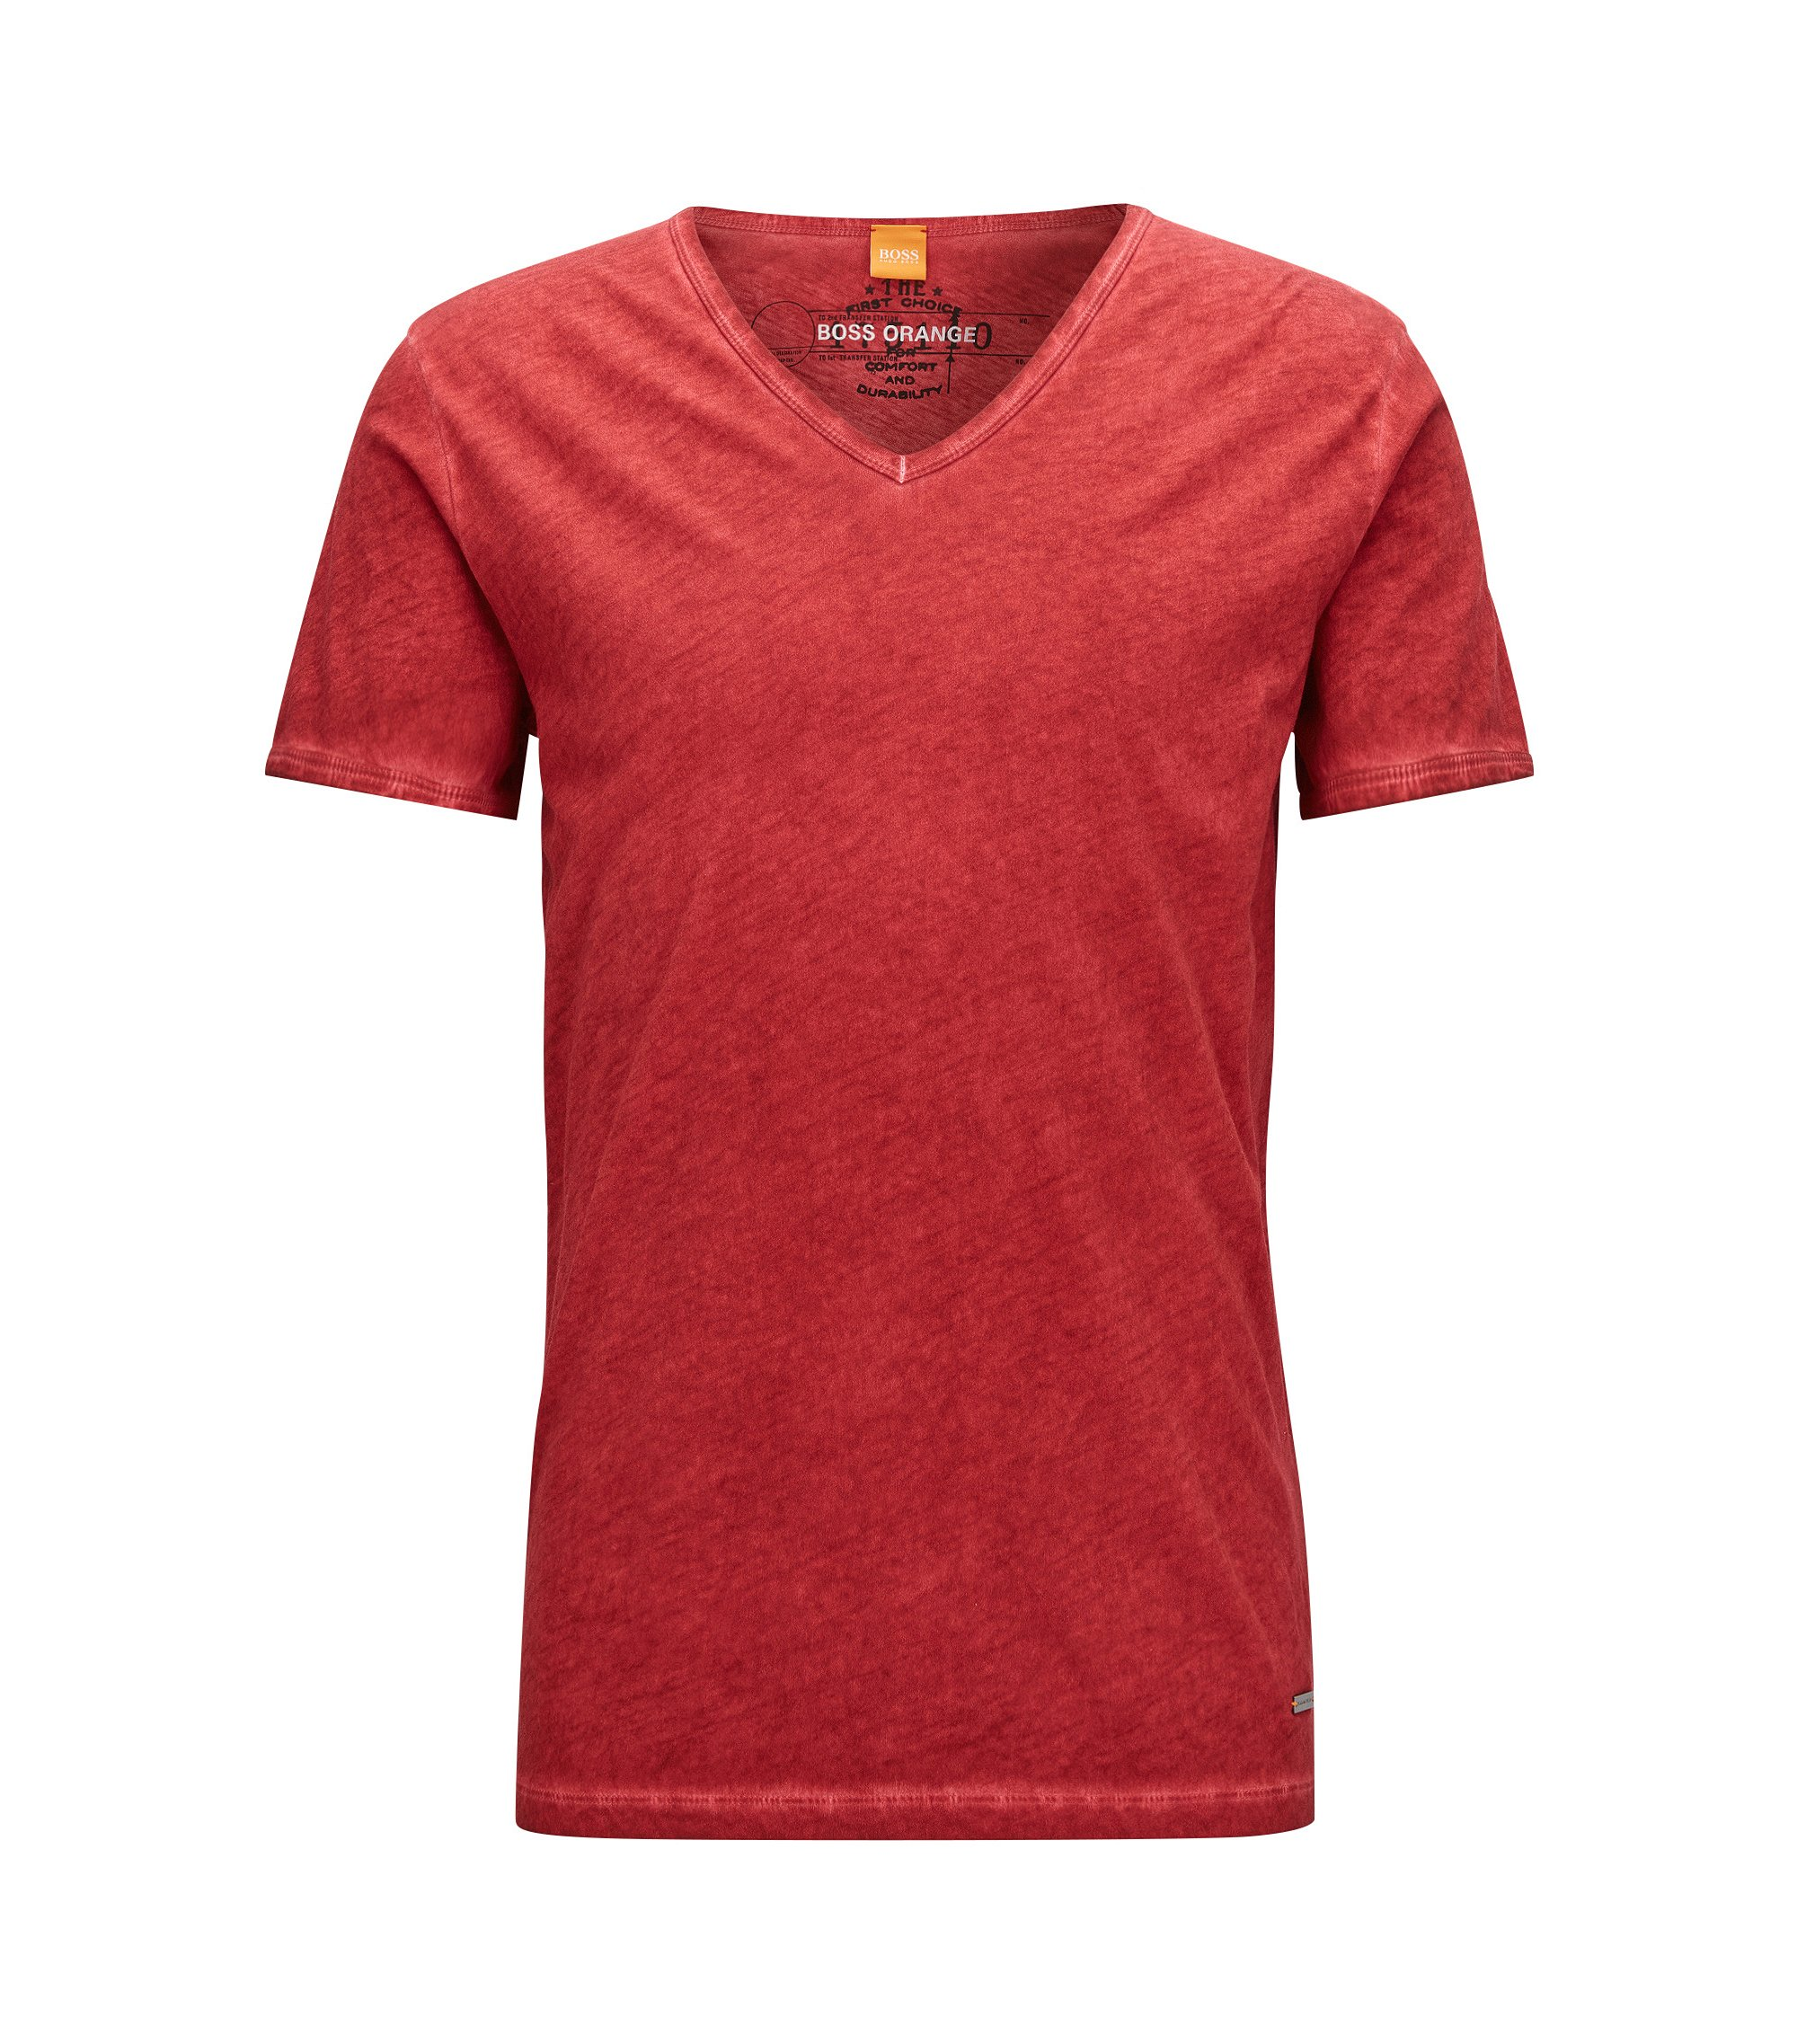 T-shirt Regular Fit en coton garment dyed, Rouge